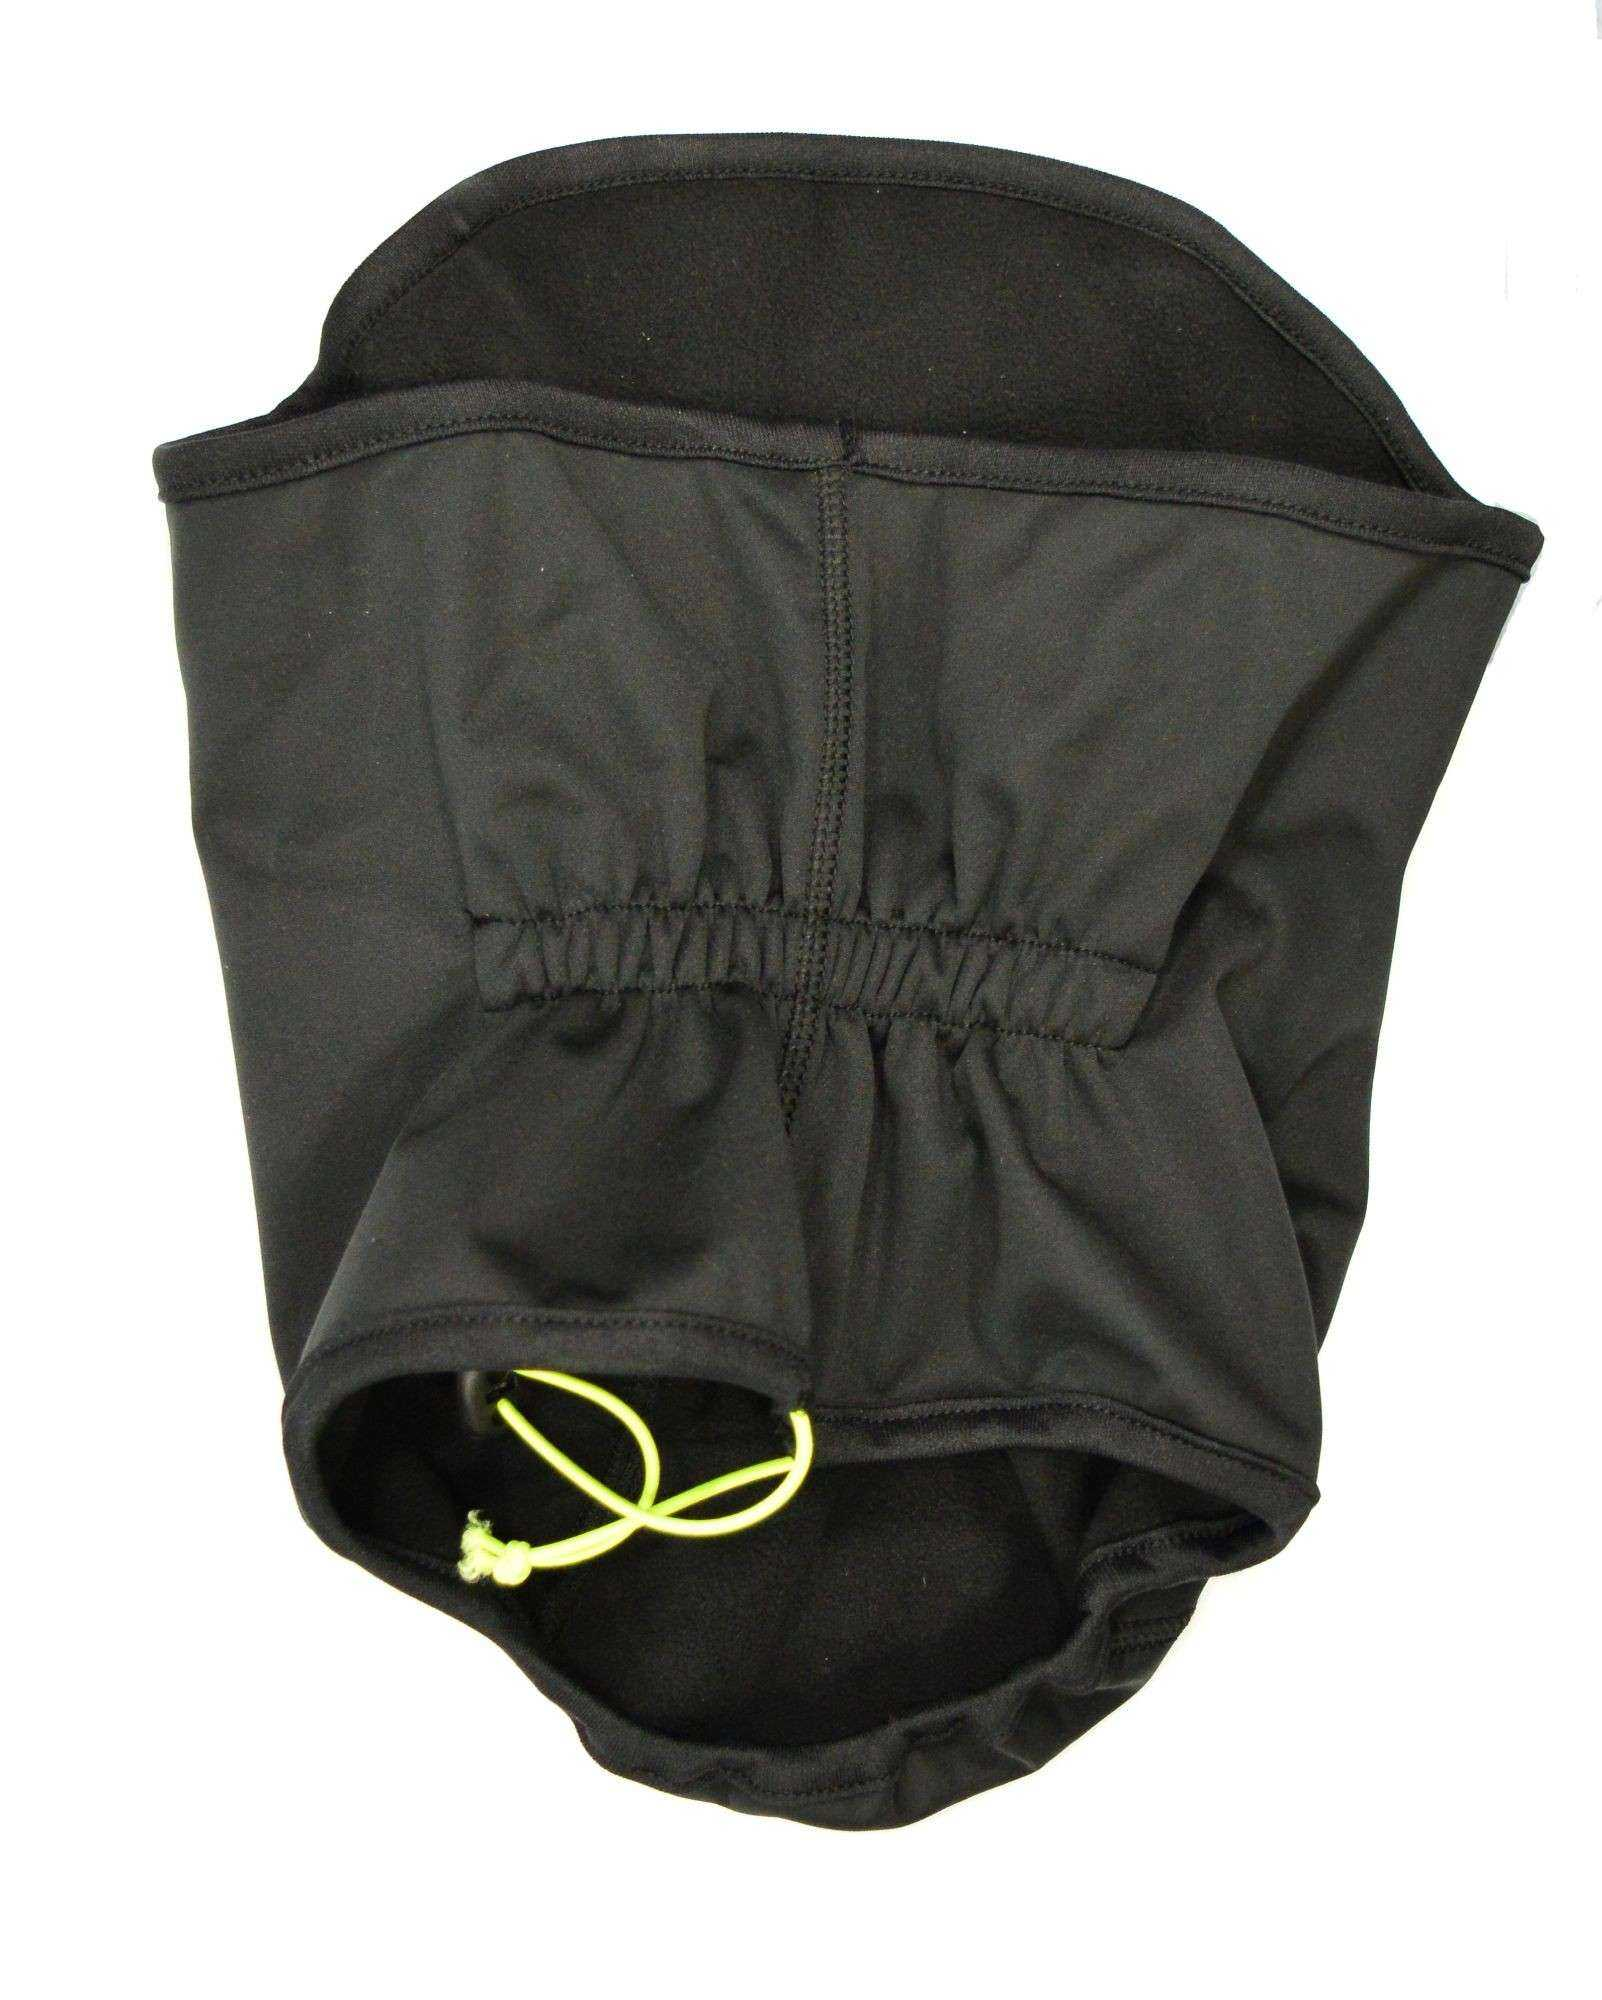 CUBRECUELLO NVG WINDSTOPPER SO